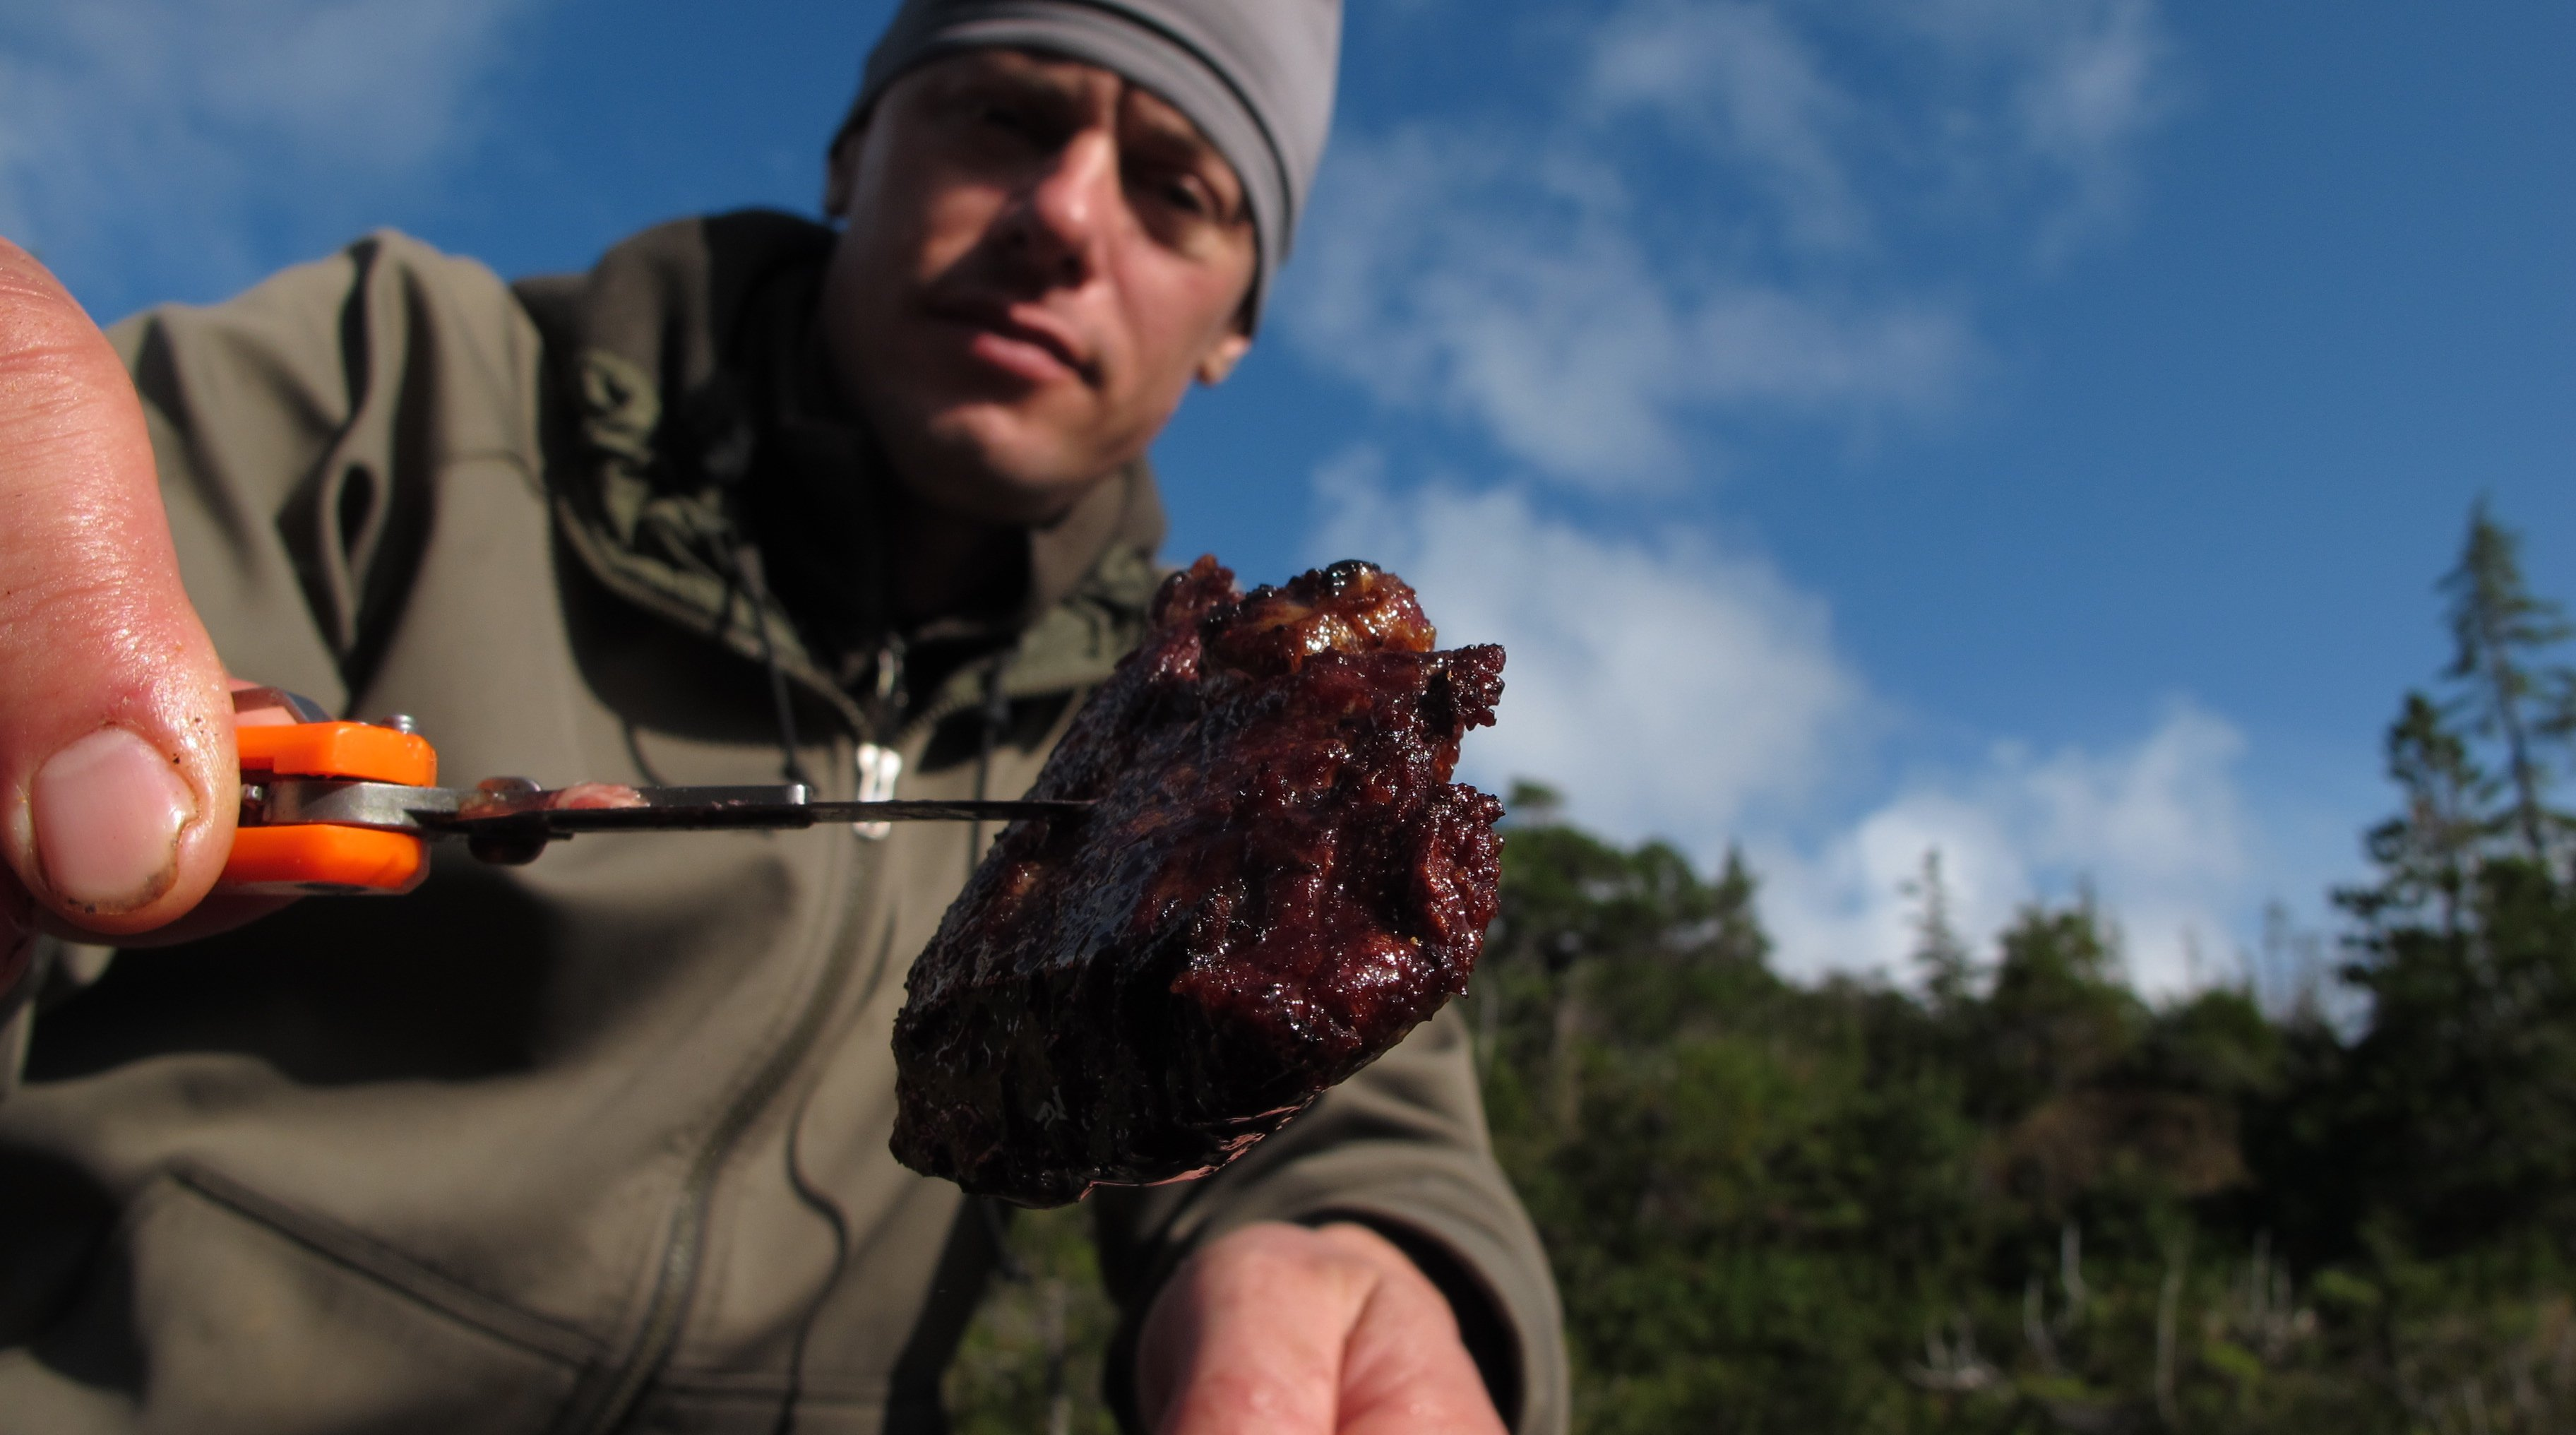 TBS Next Gen: You can't eat meat and be an environmentalist